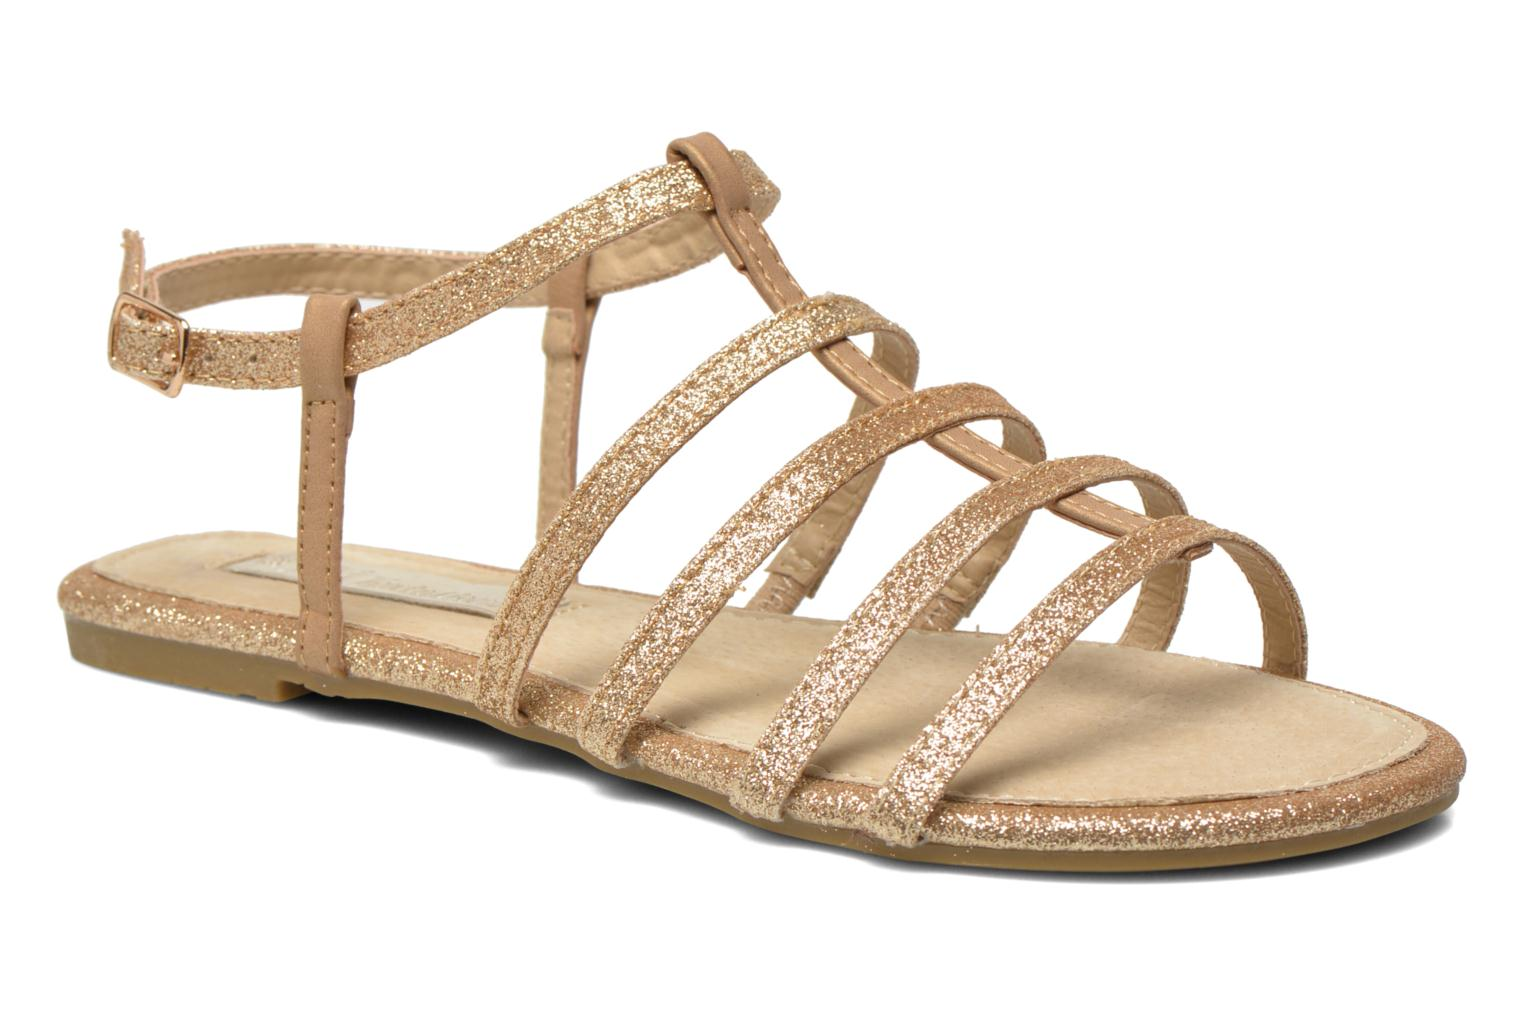 Marques Chaussure femme Xti femme Dominicana 30160 Gold